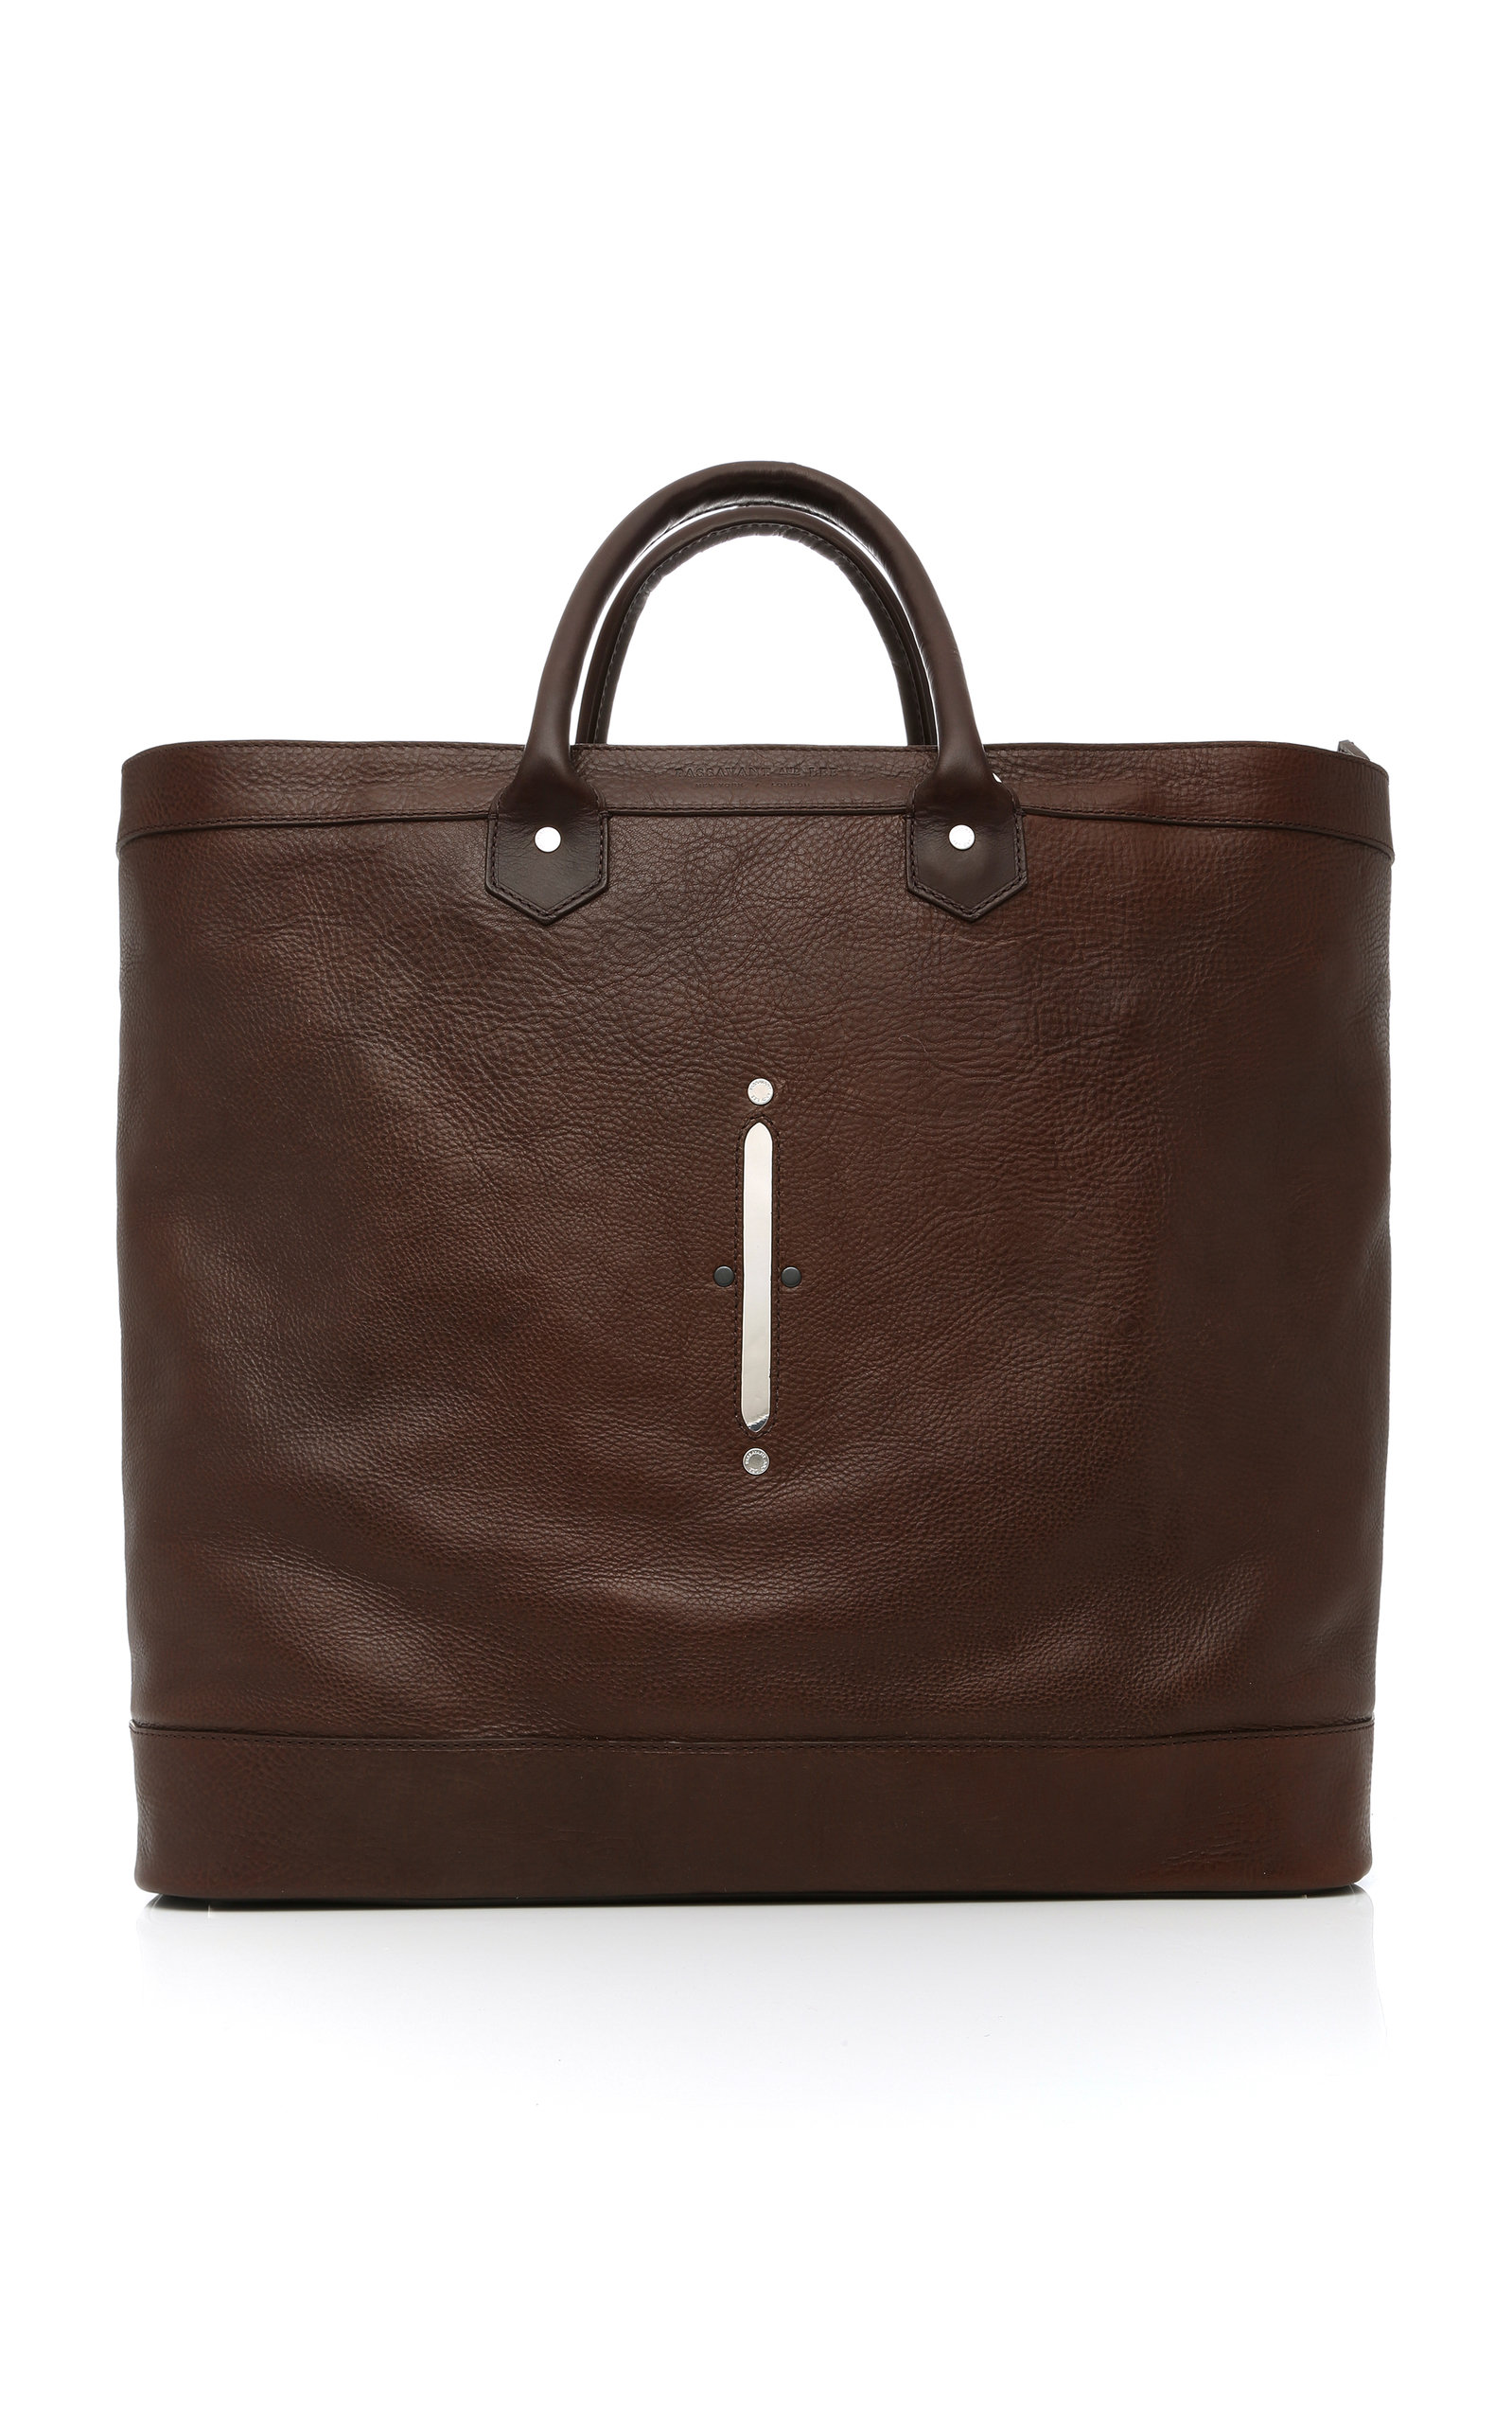 PASSAVANT AND LEE SCIER LEATHER HOLDALL